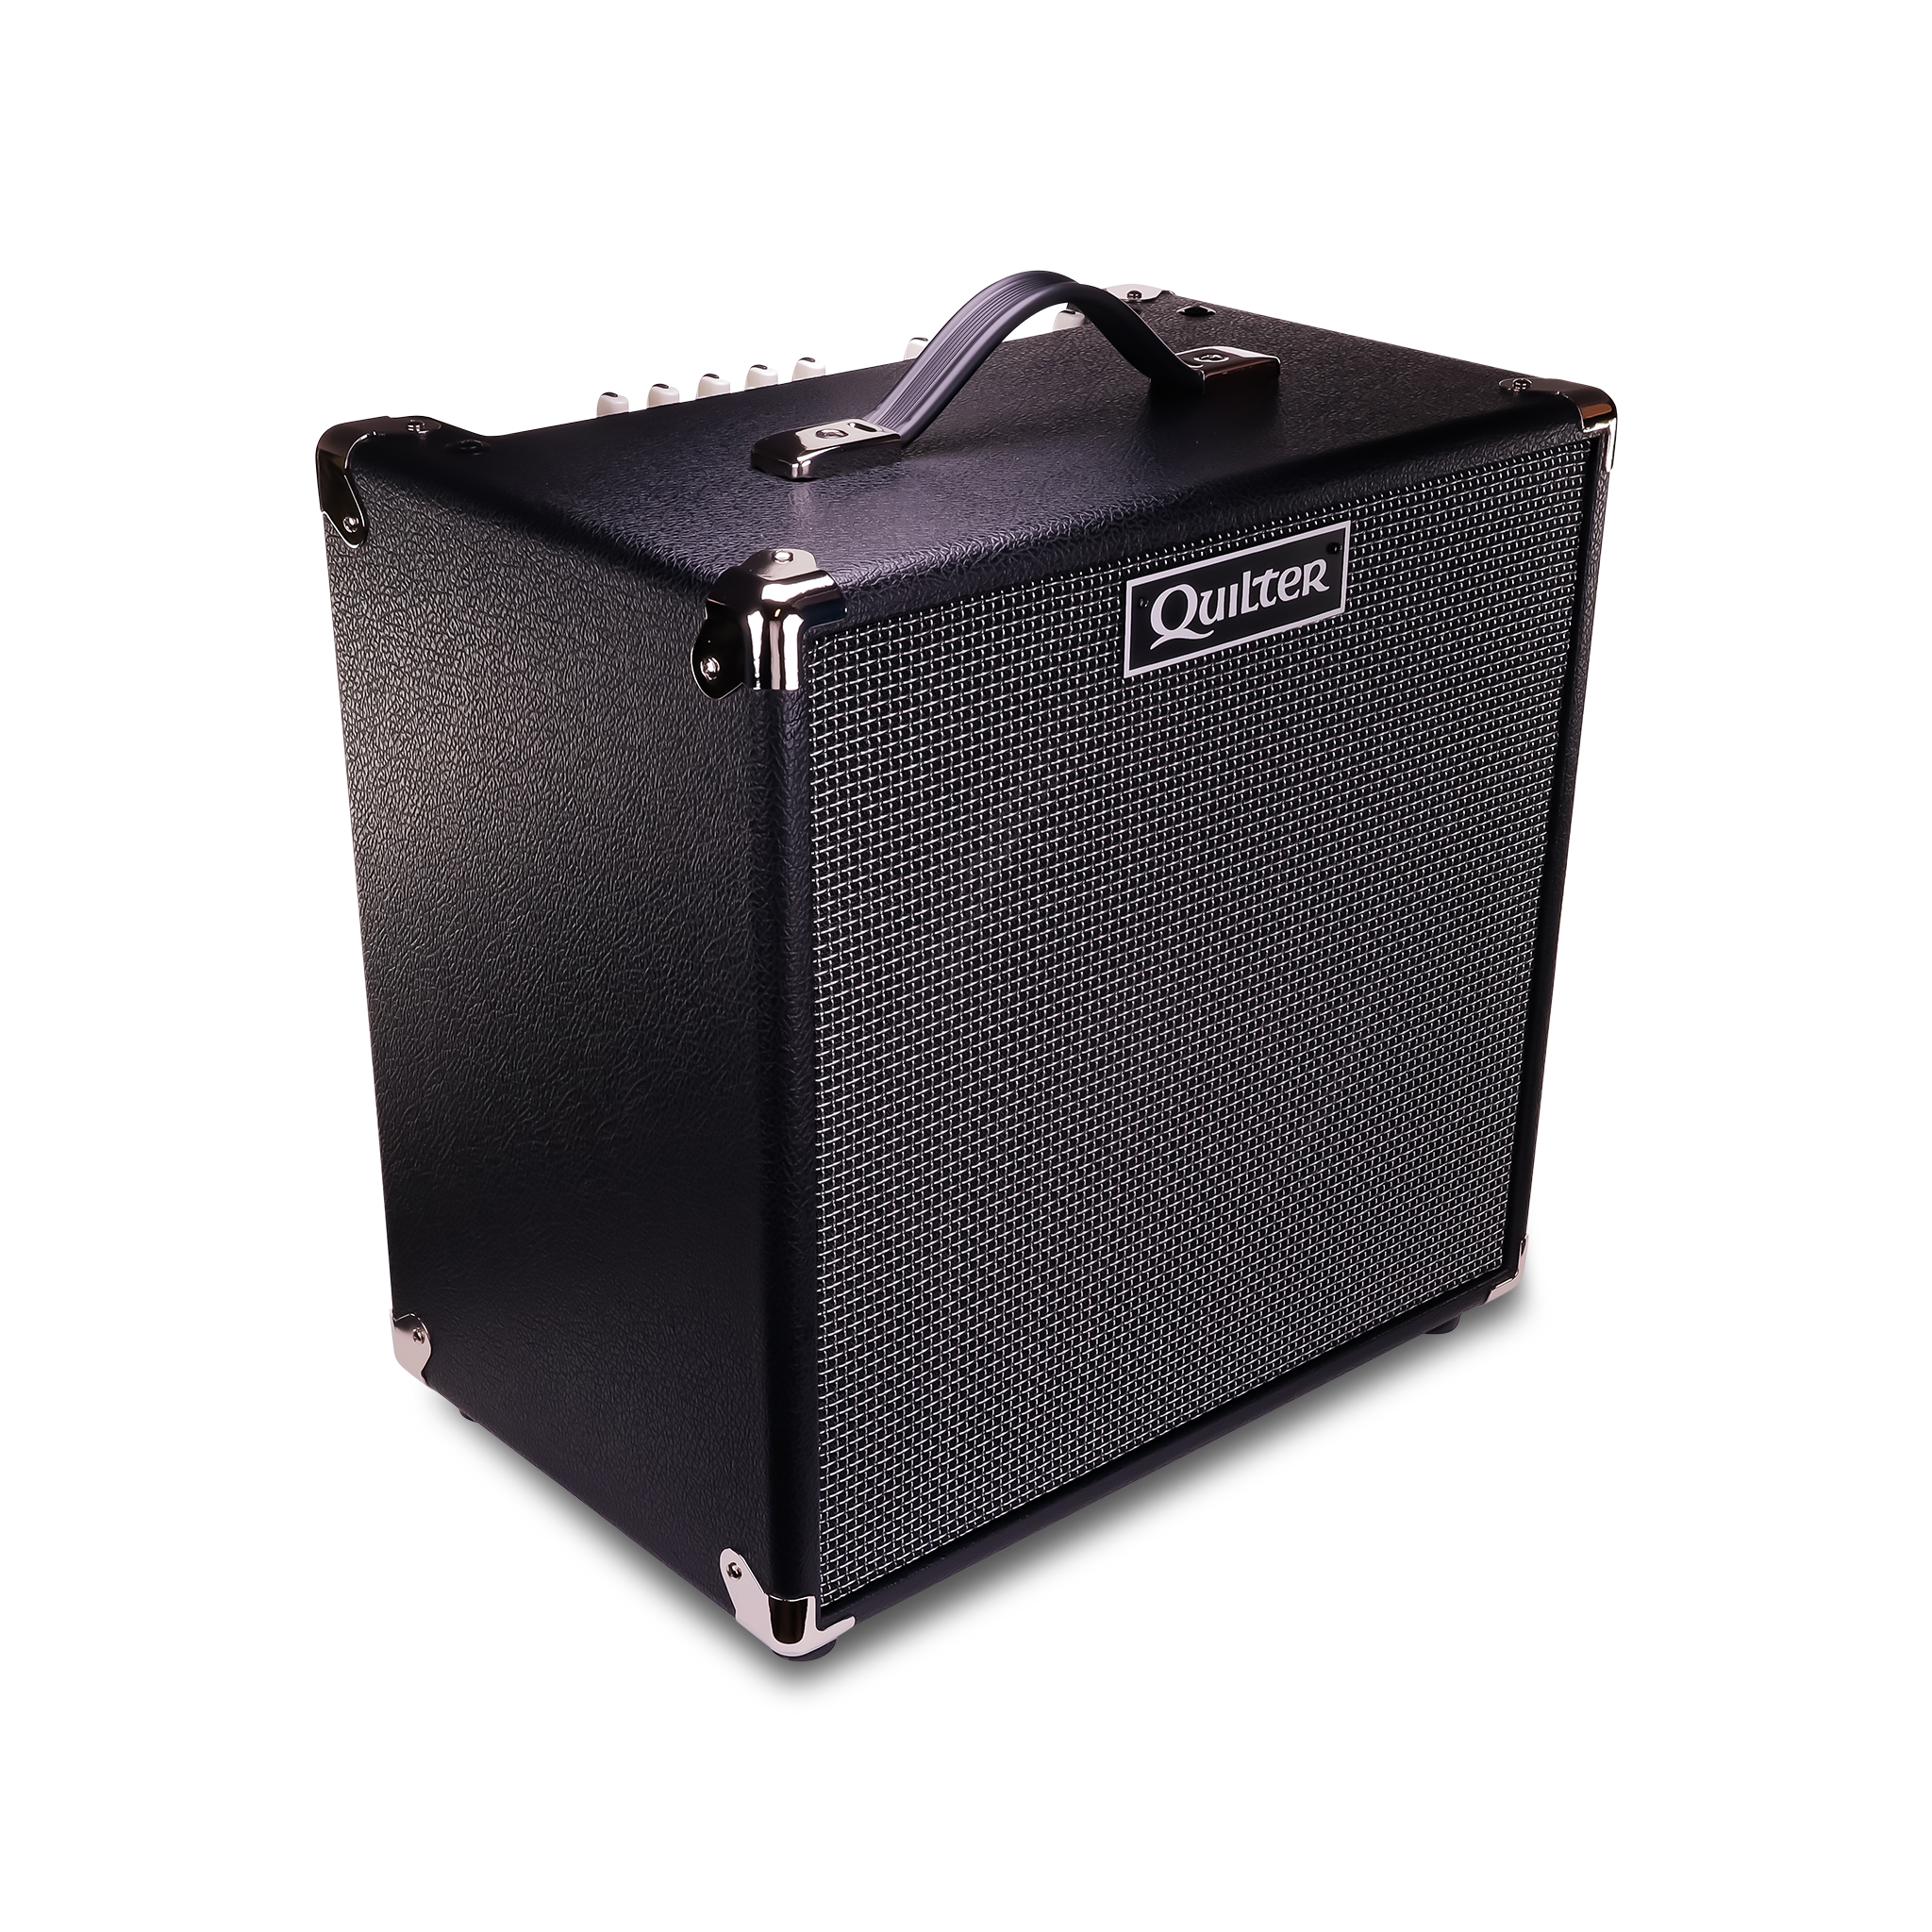 Quilter Aviator Cub 50w Combo amp